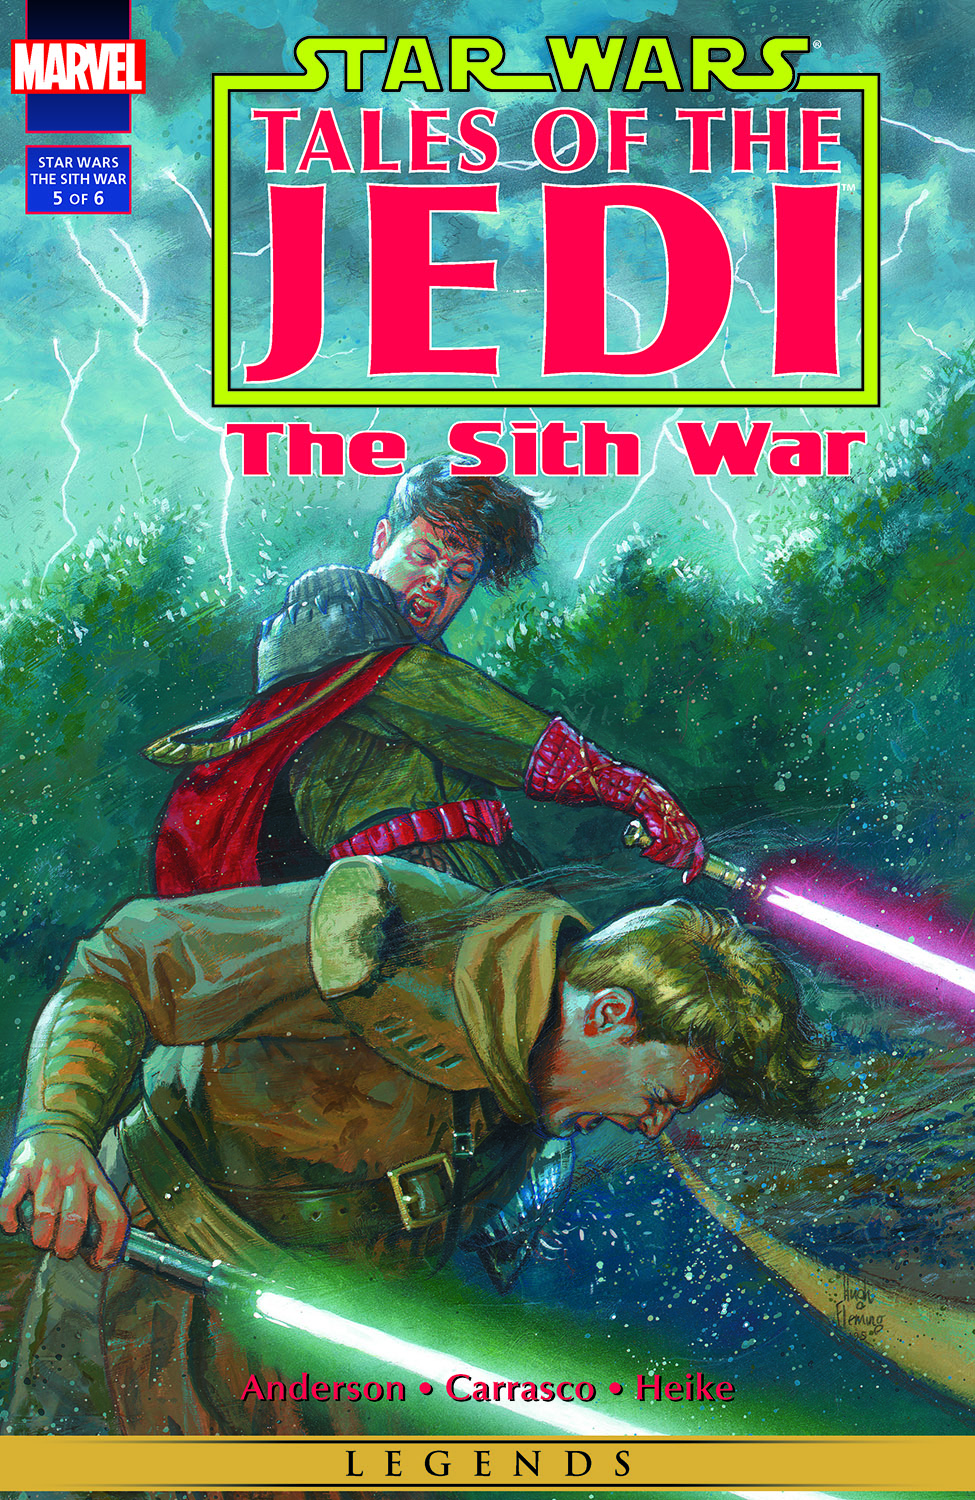 Star Wars: Tales Of The Jedi - The Sith War (1995) #5